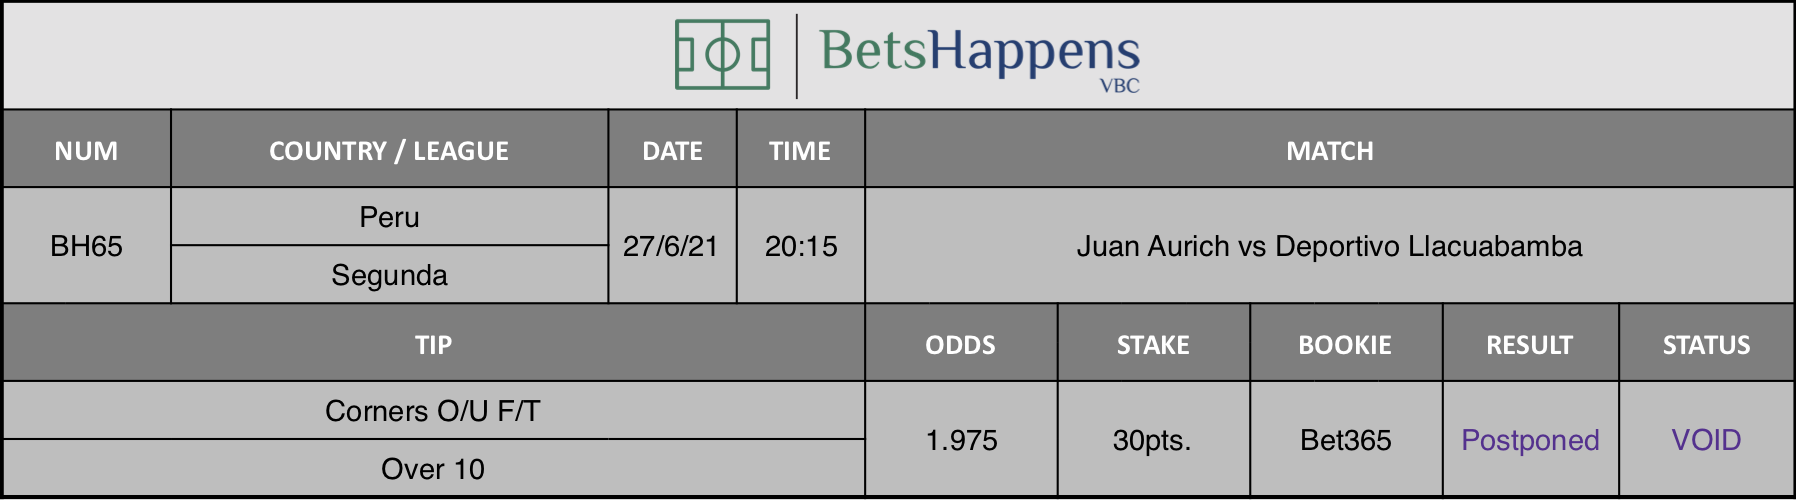 Results of our tip for the Juan Aurich vs Deportivo Llacuabamba match Corners O/U F/T Over 10 is recommended.